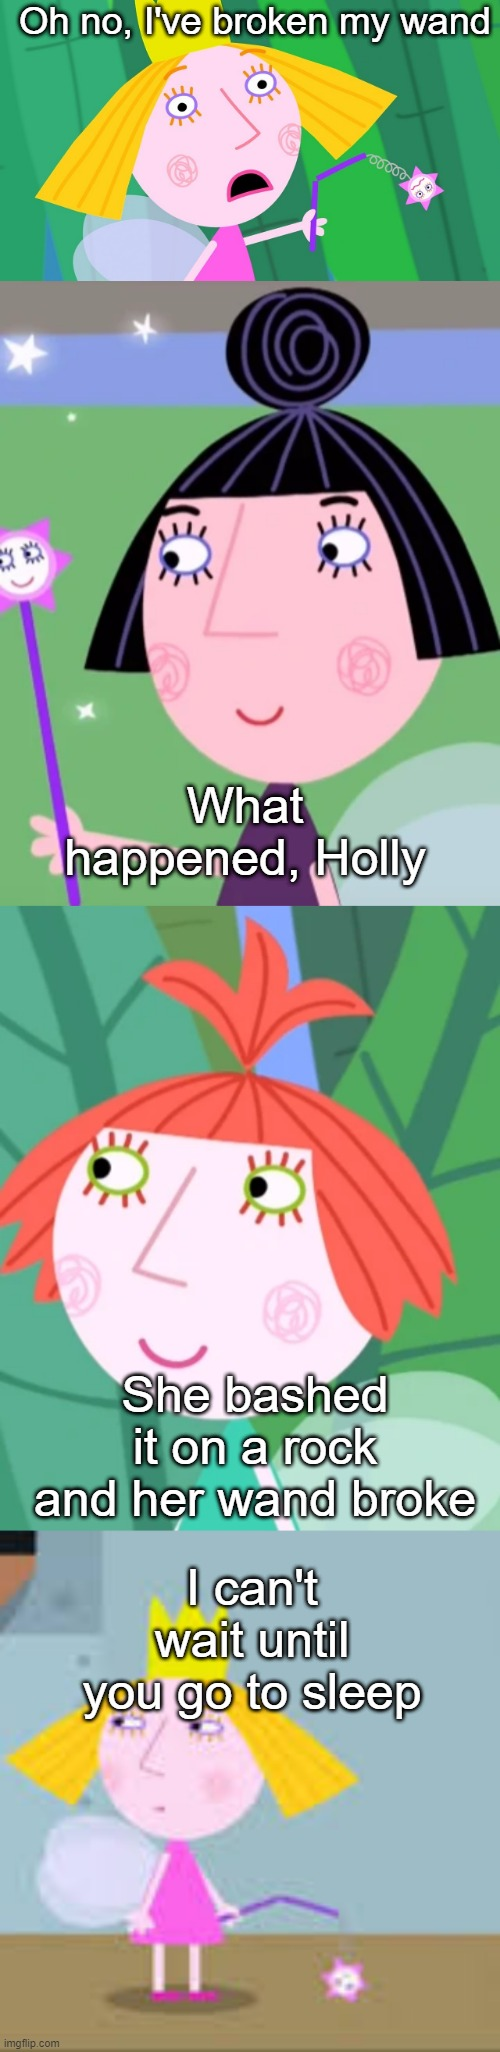 Ben and Holly's Little kingdom | Oh no, I've broken my wand What happened, Holly She bashed it on a rock and her wand broke I can't wait until you go to sleep | image tagged in memes | made w/ Imgflip meme maker